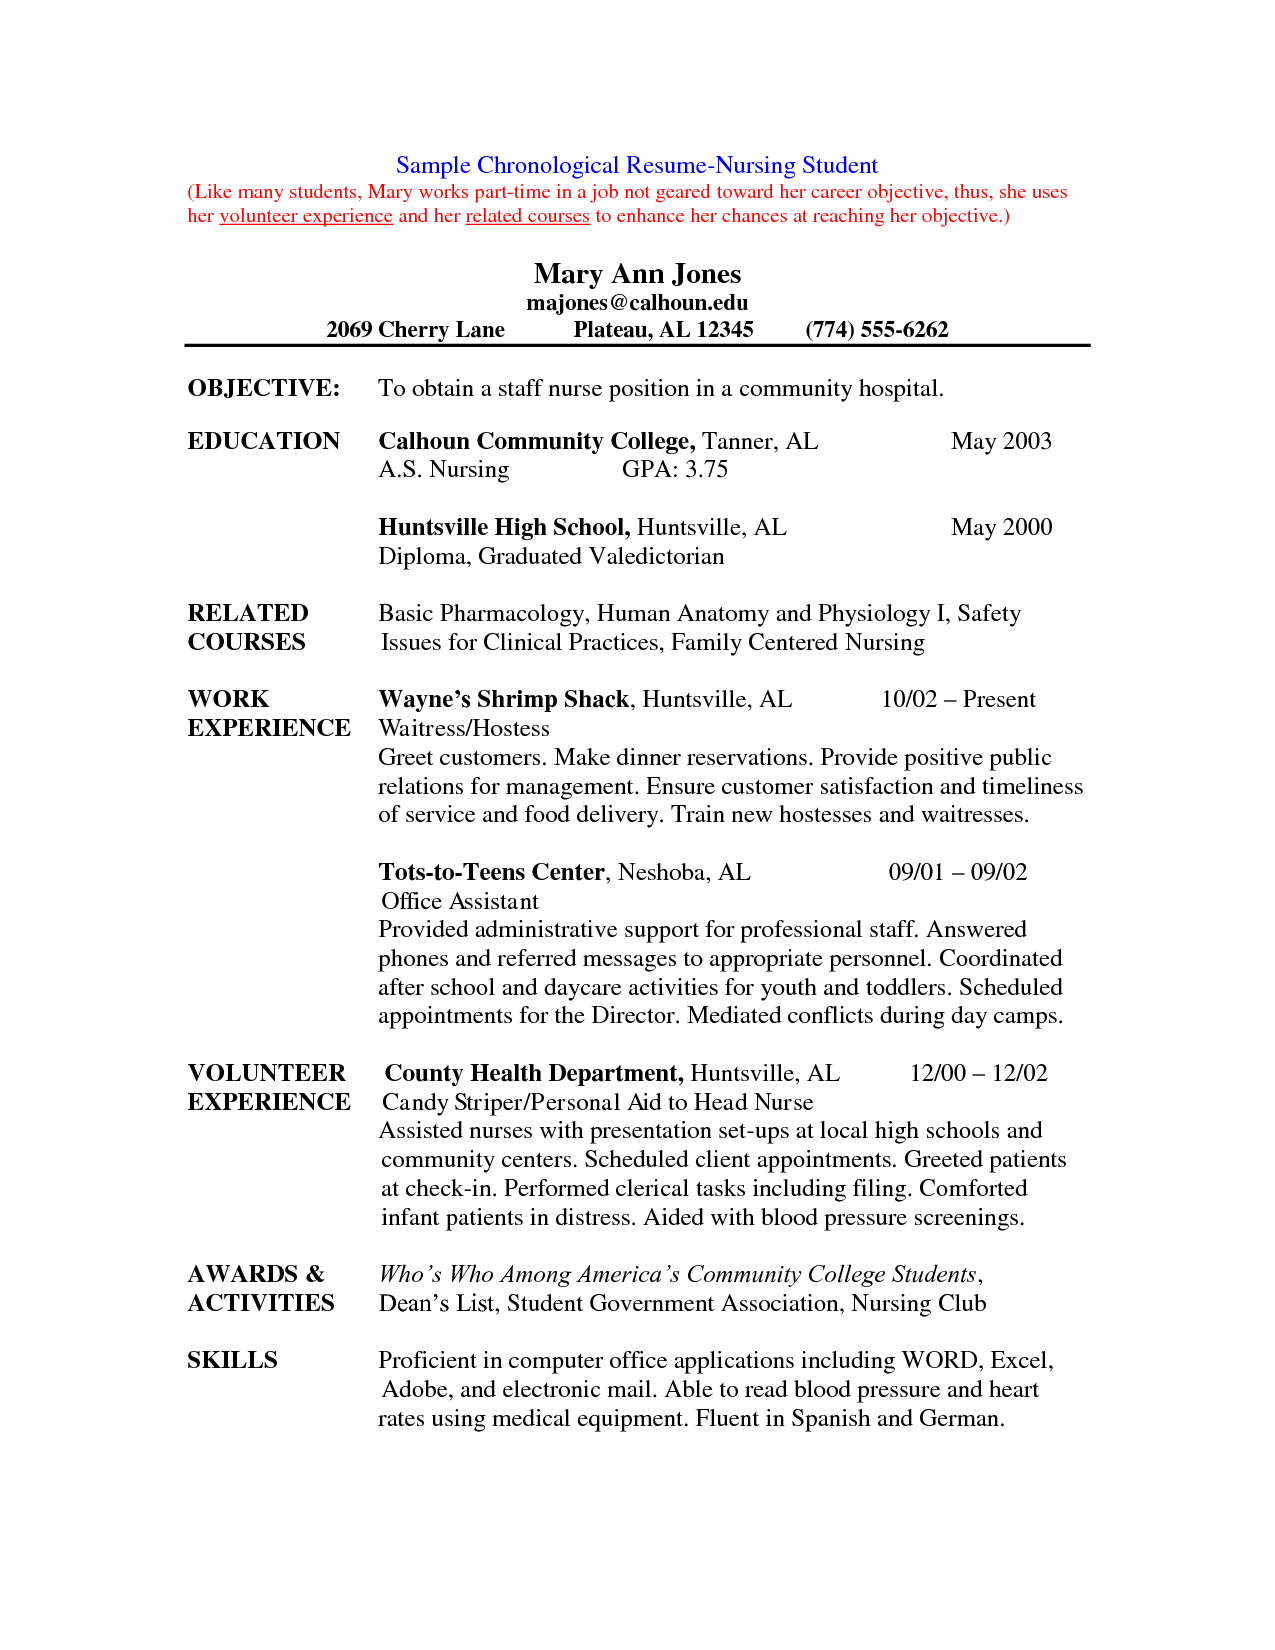 nurse resume sample for abroad nursing objectives entry level application letter nurses fresh free best free home design idea inspiration - Resume Samples For Nursing Students